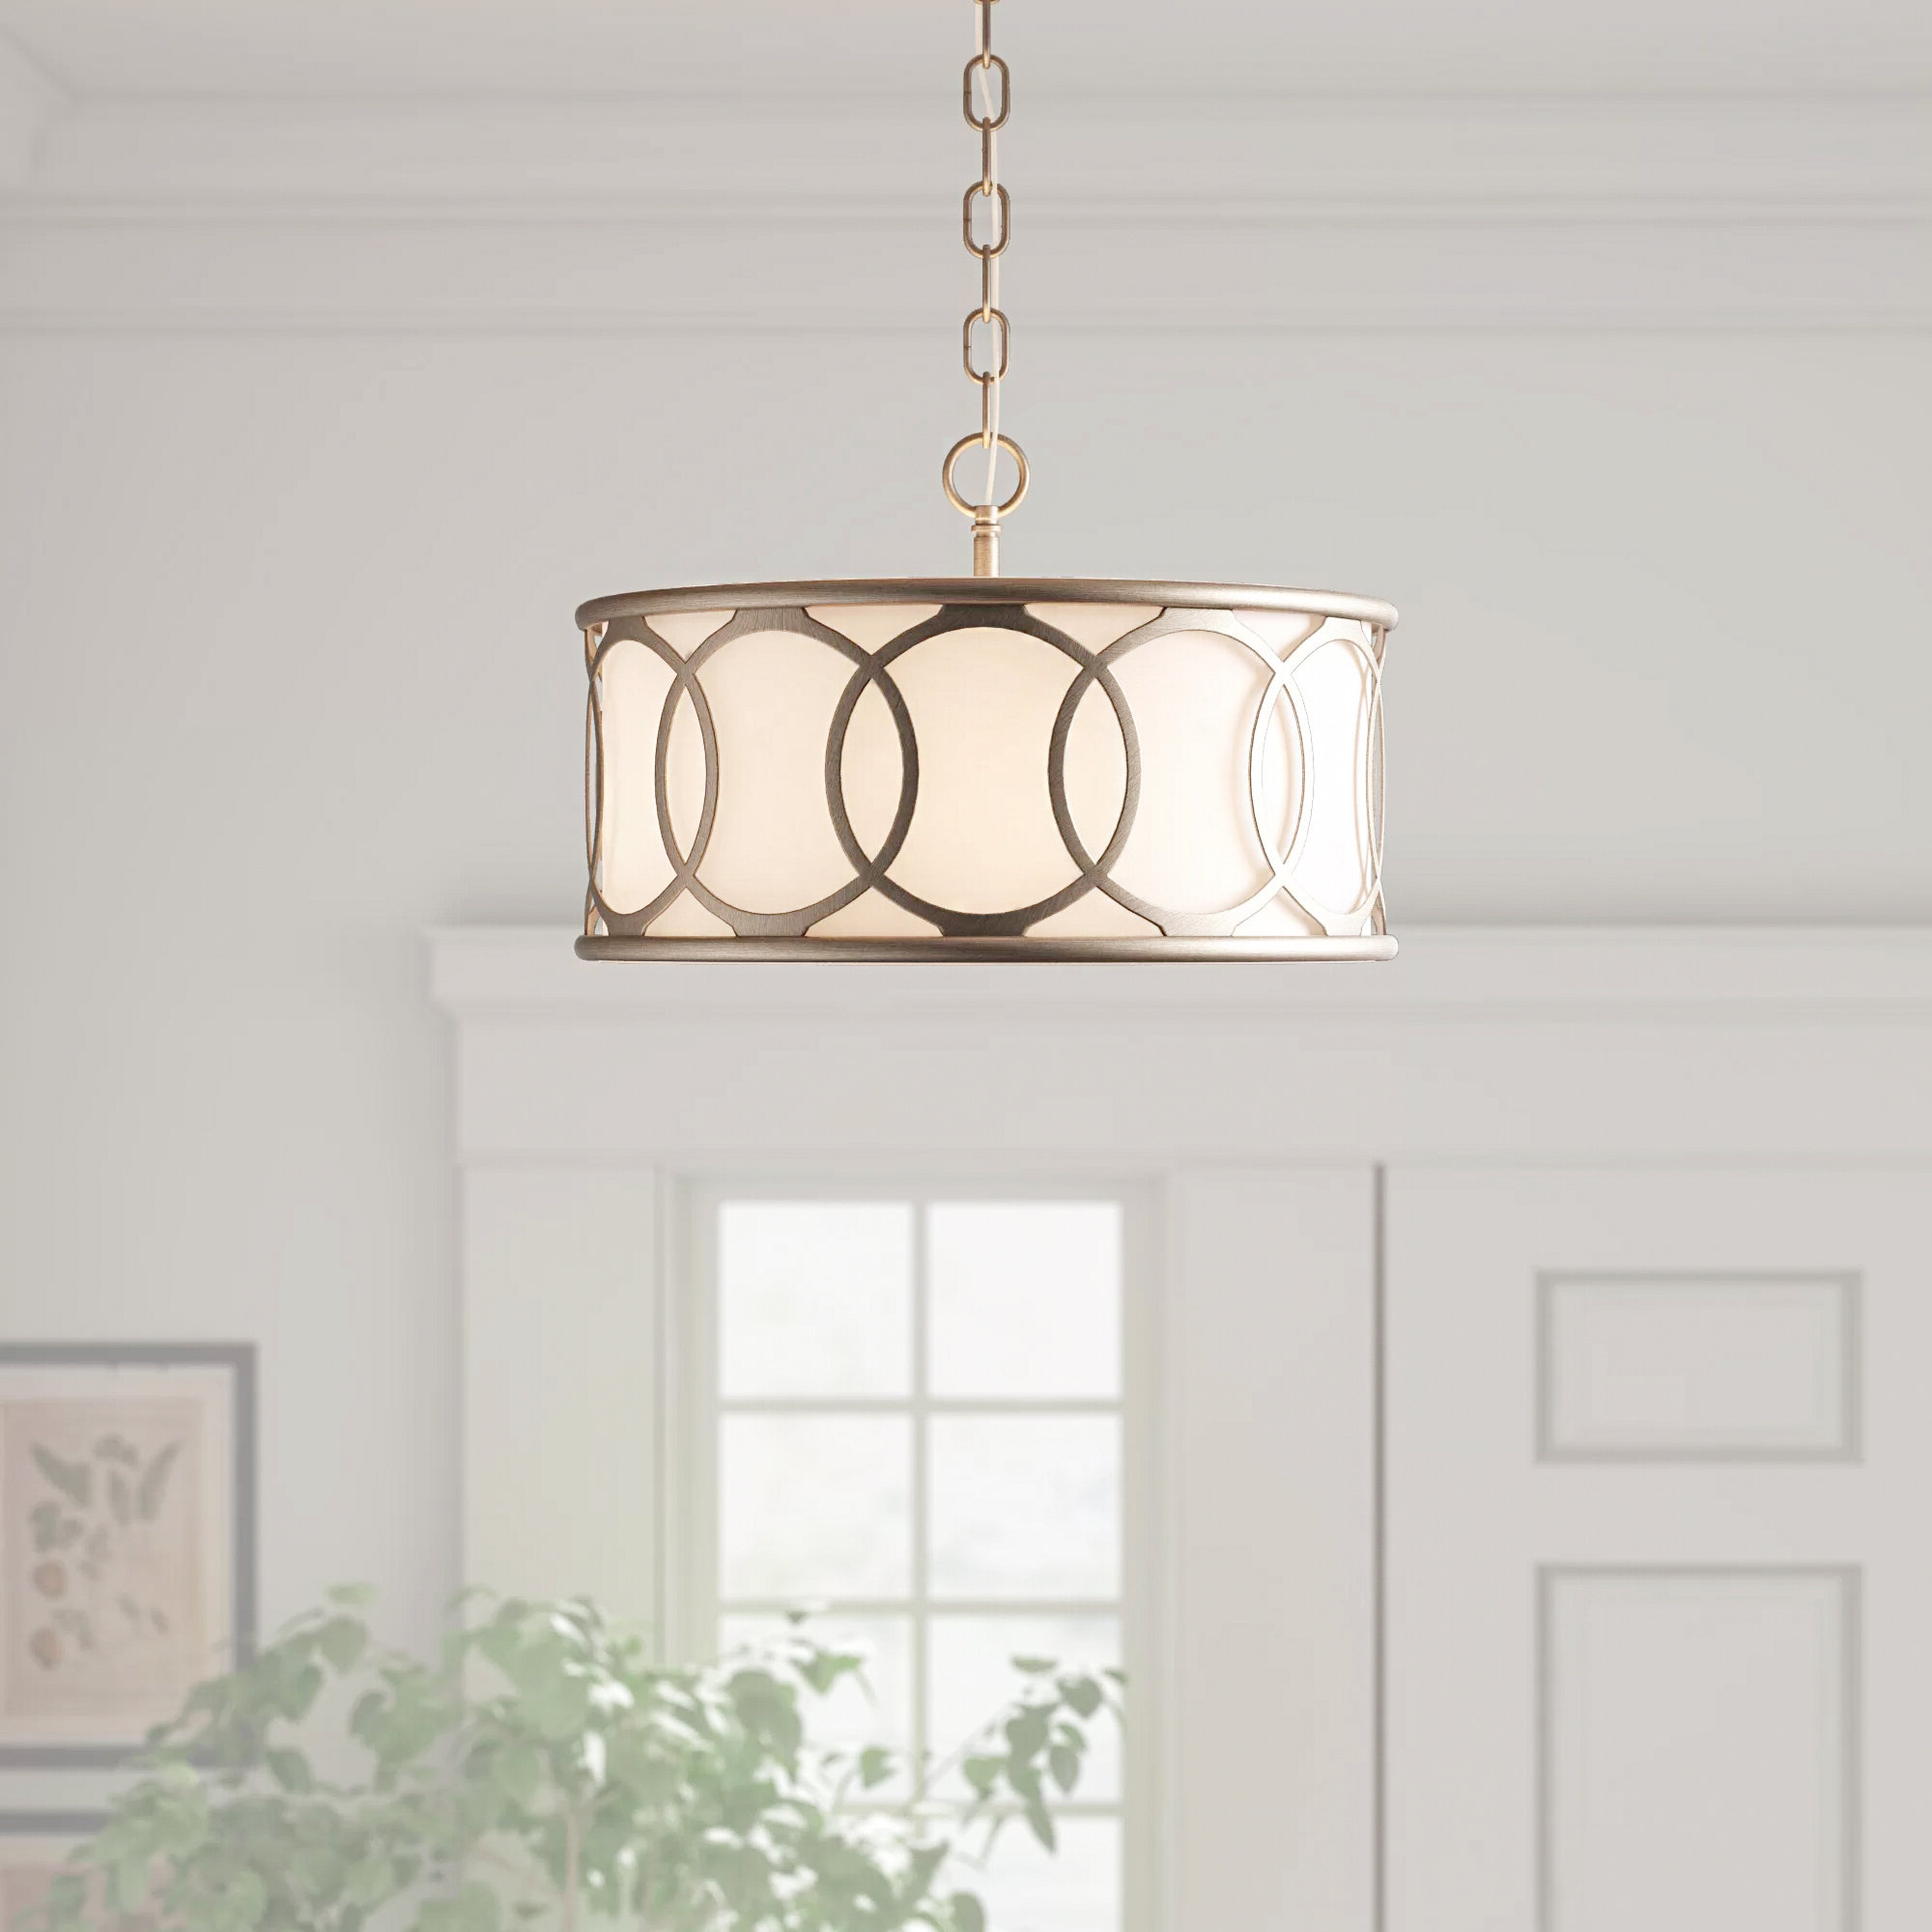 Farrier 3 Light Lantern Drum Pendants For Famous Townsend 3 Light Chandelier (View 6 of 20)